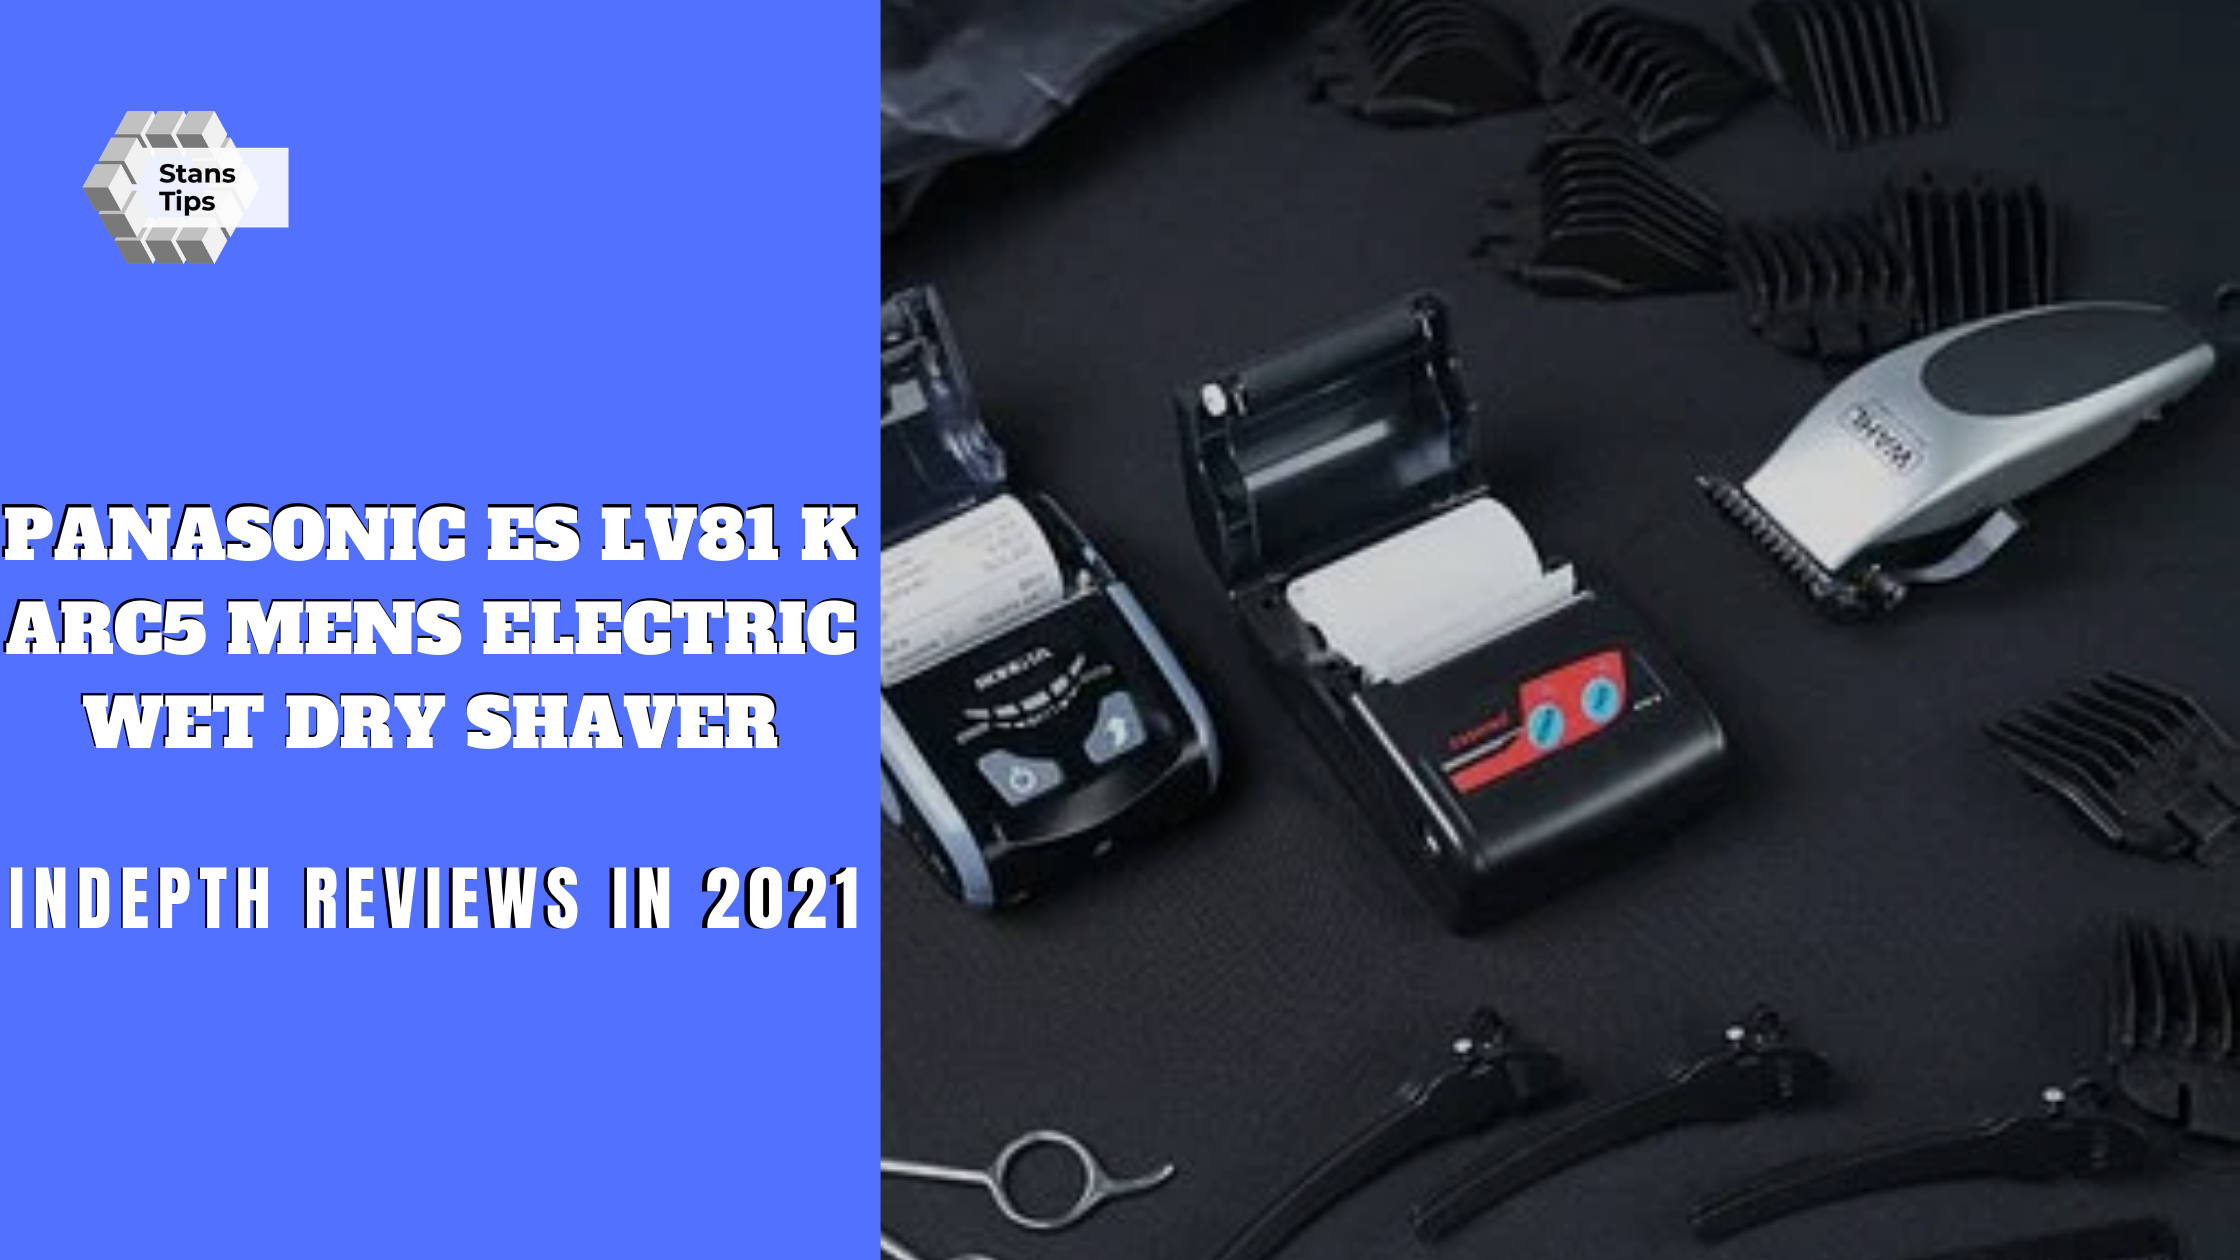 Panasonic es lv81 k arc5 mens electric wet dry shaver review